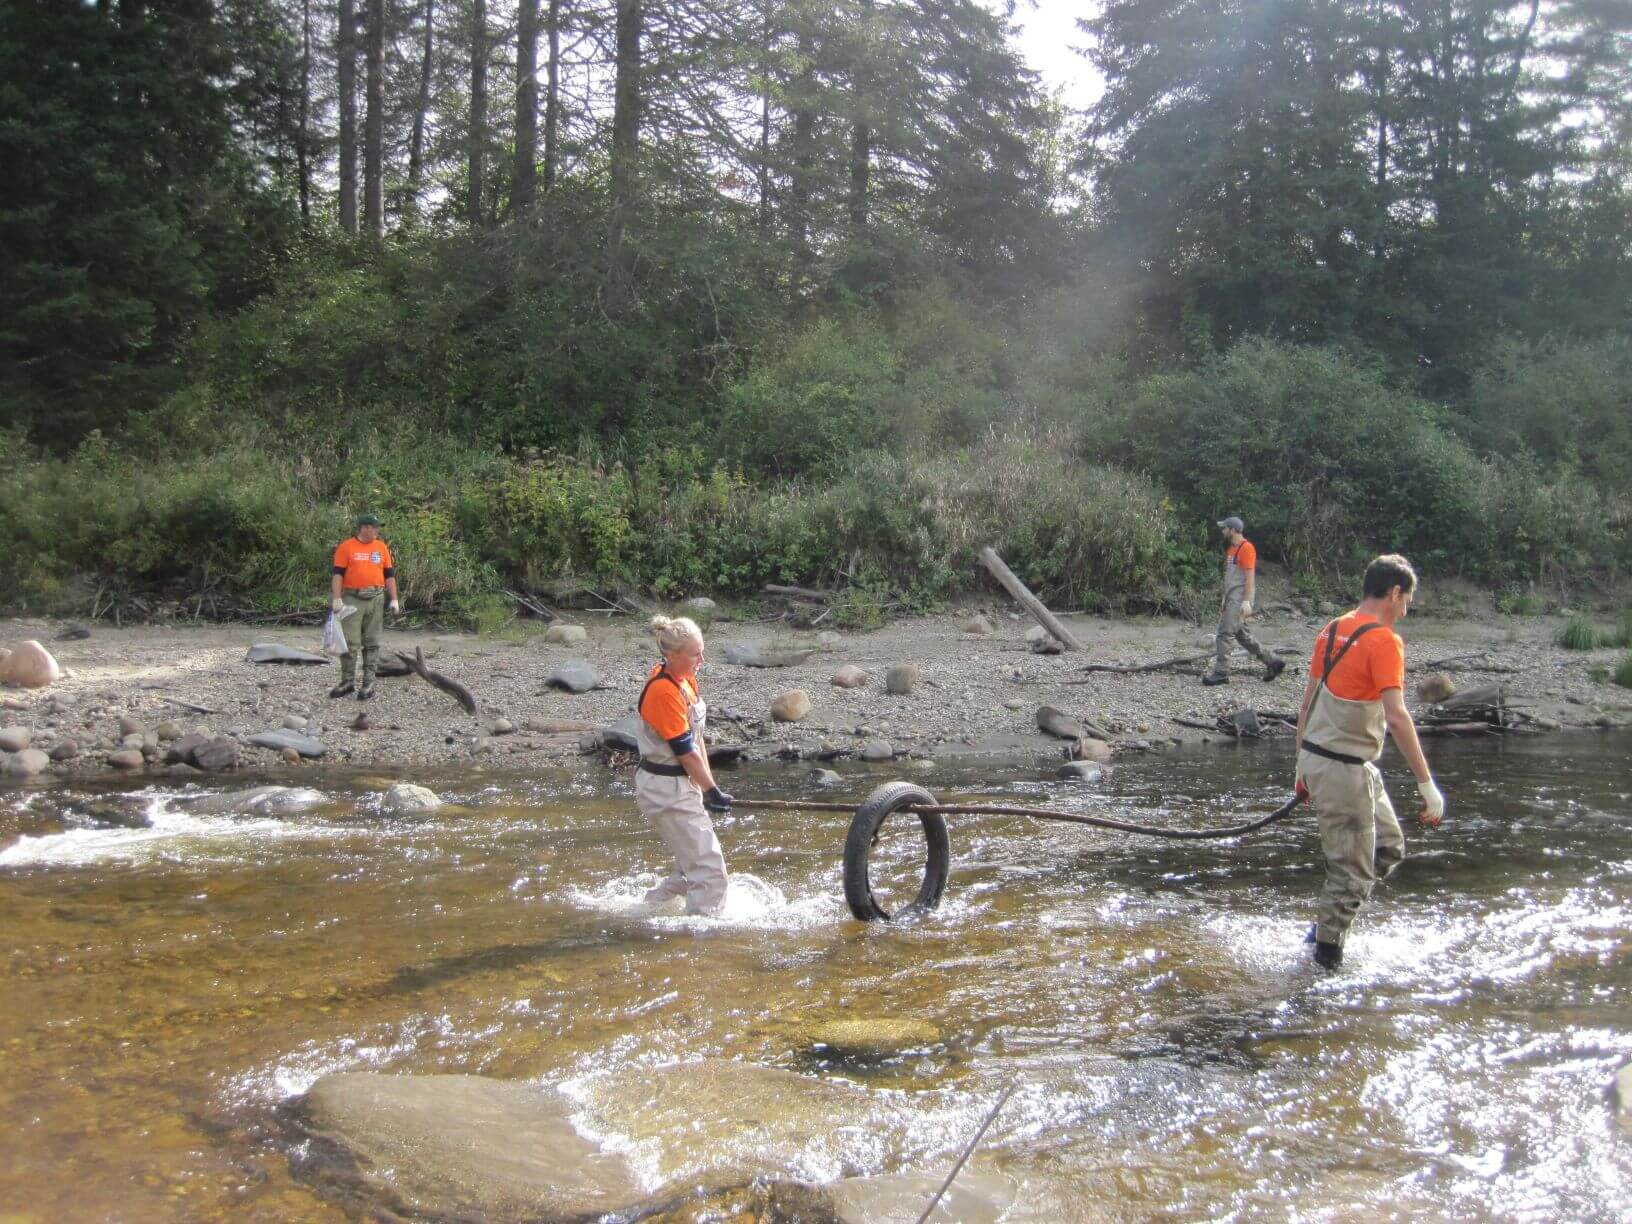 removing a tire from the passumpsic river